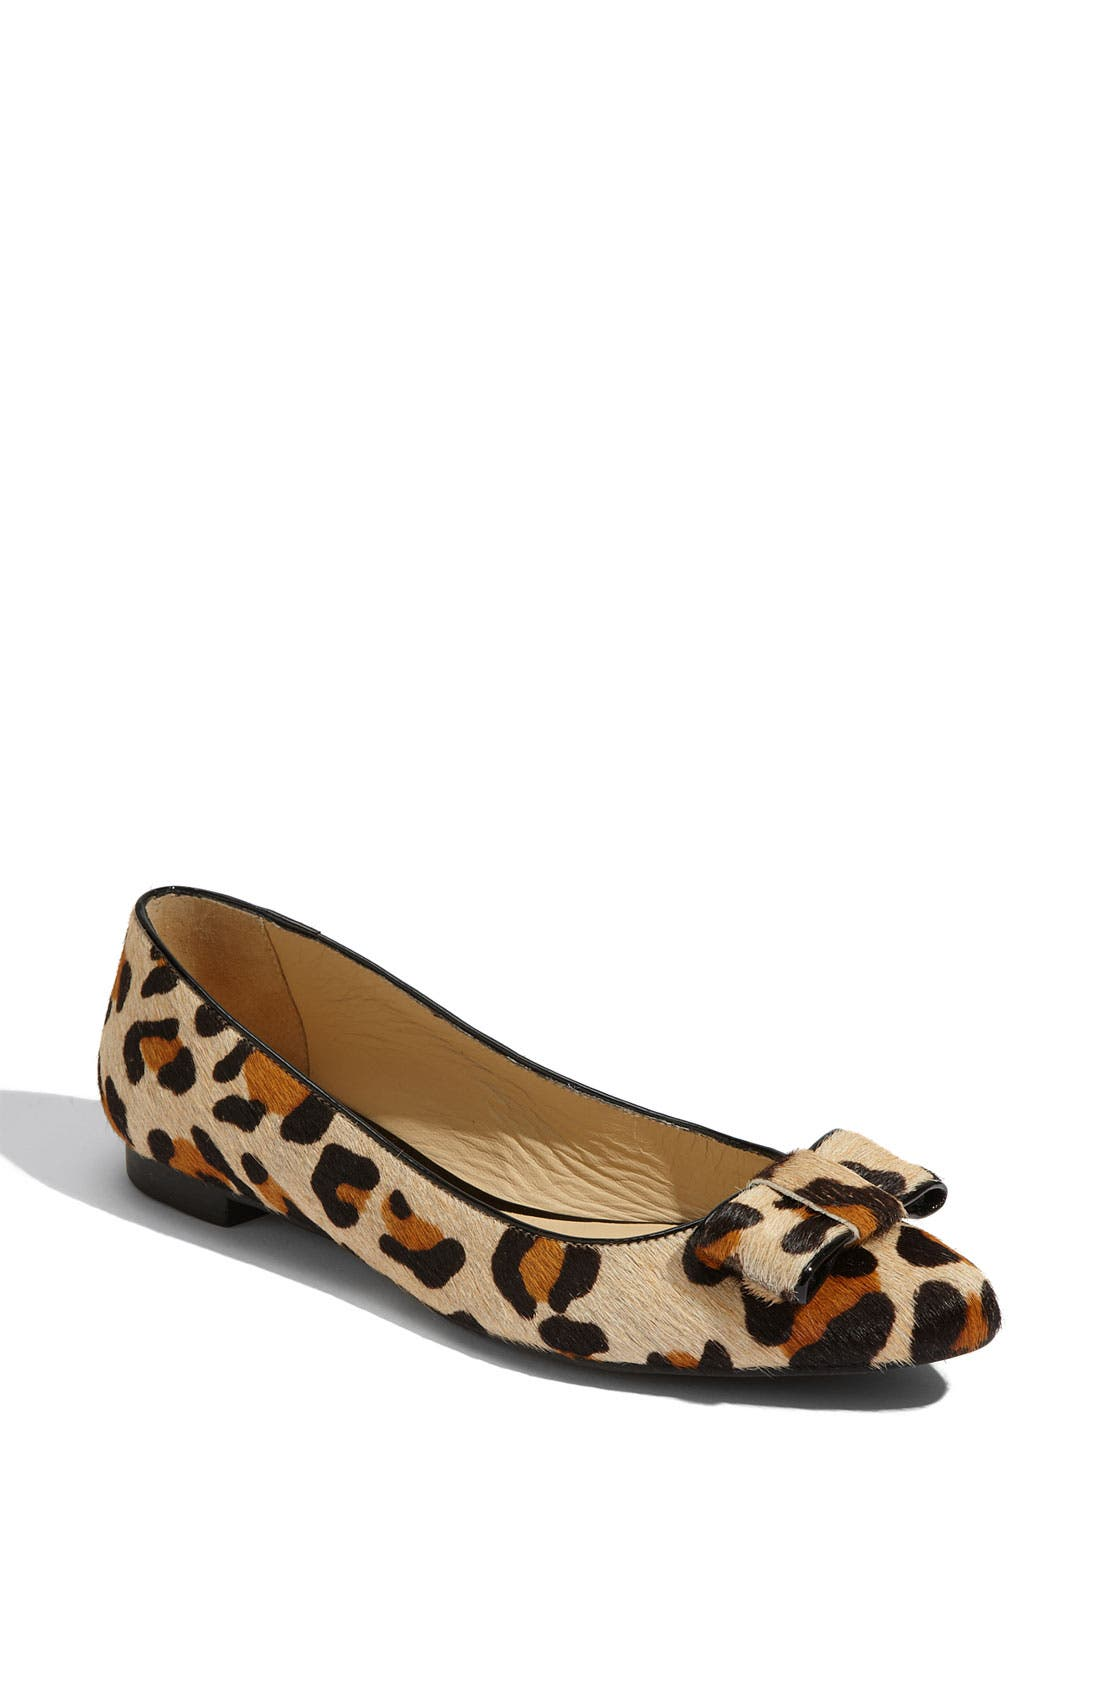 'elise' leopard print calf hair flat,                             Main thumbnail 1, color,                             Large Leopard Printed